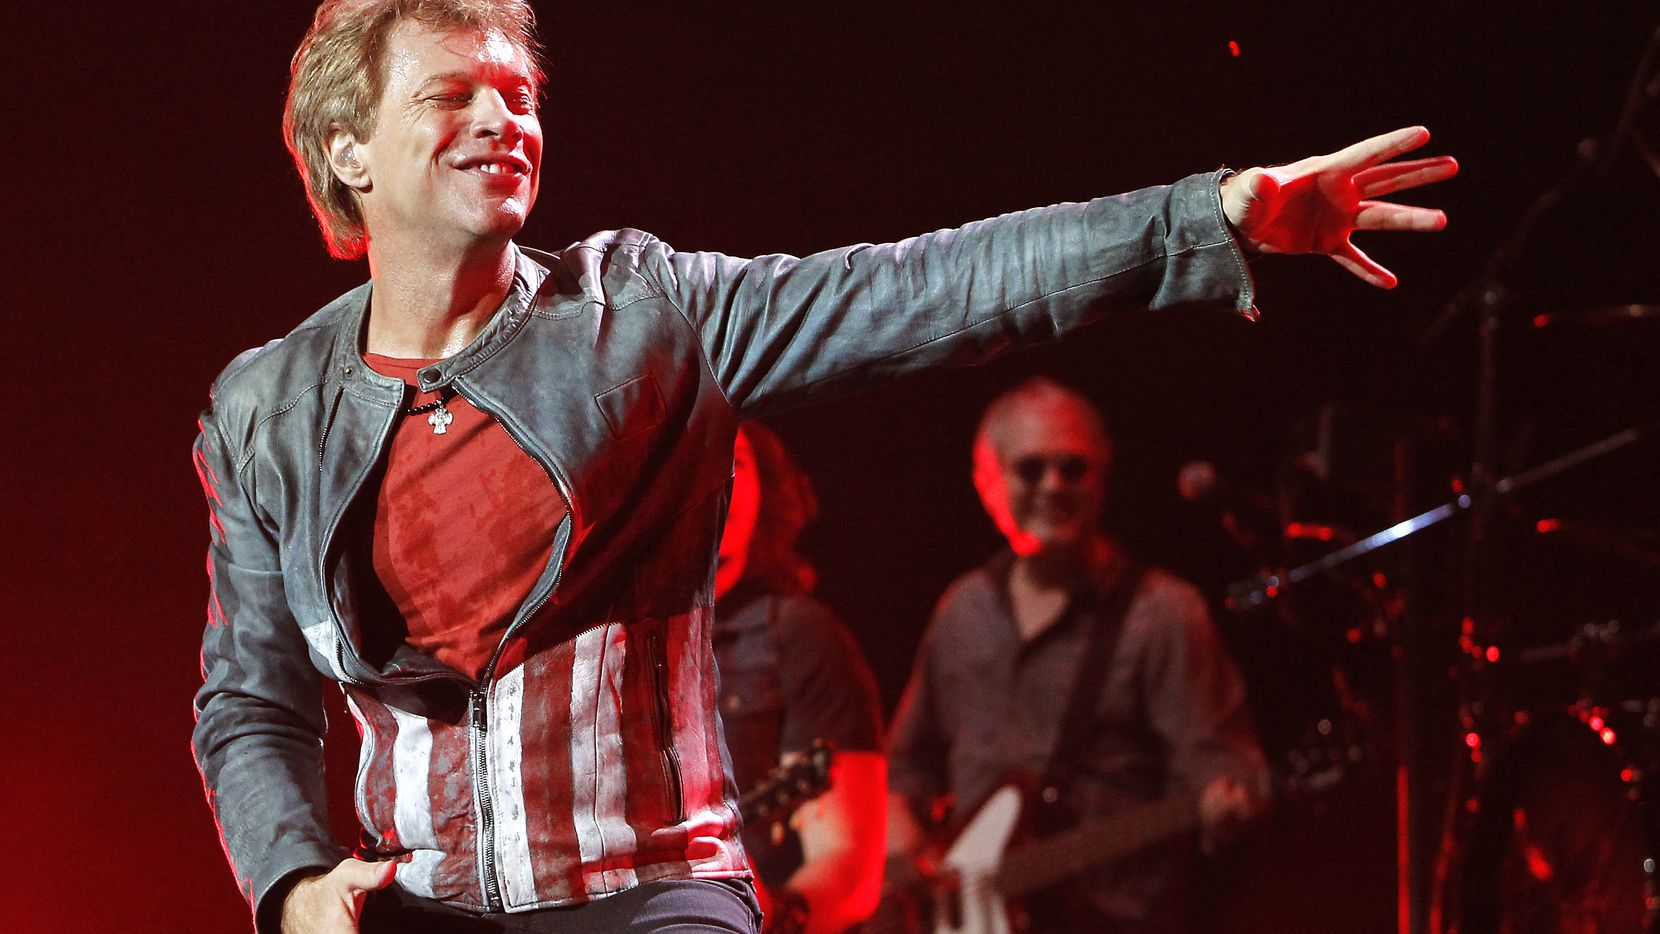 Singer Jon Bon Jovi performed at American Airlines Center in Dallas during Bon Jovi's 2013 tour. If you want to see the band during its AAC return on June 25, tickets will set you back nearly $140 apiece.